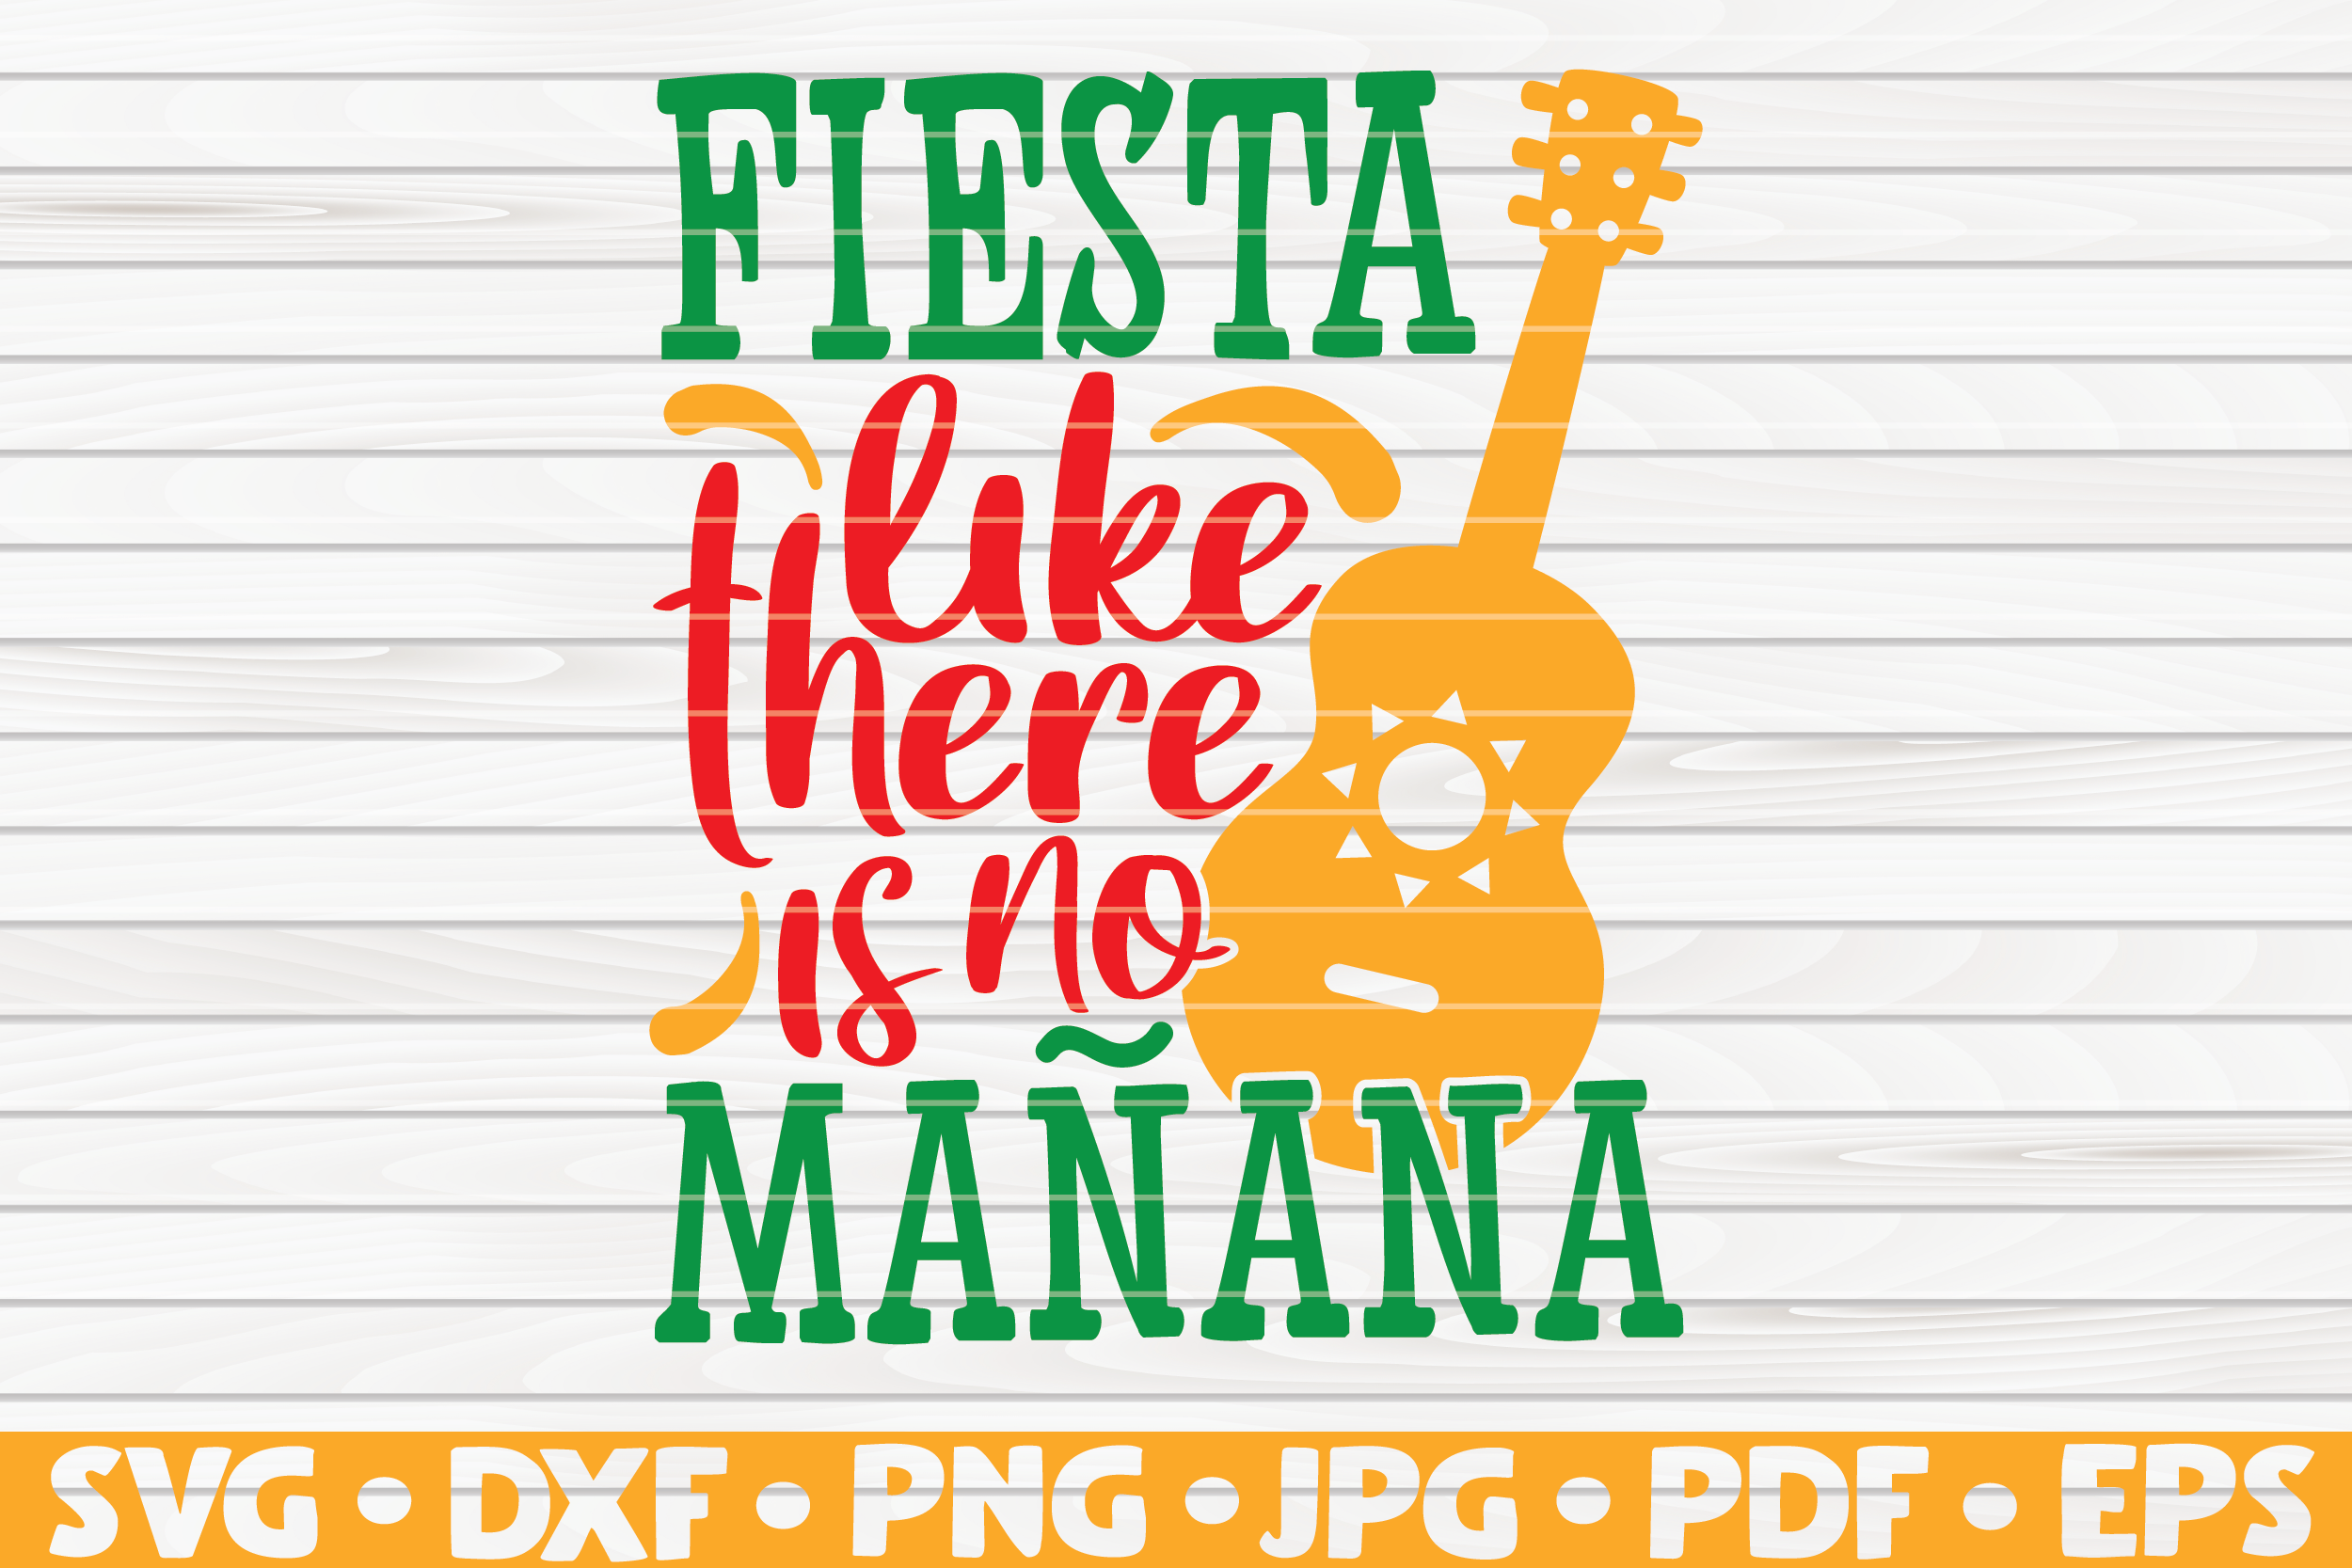 Download Free Fiesta Like There Is No Manana Vector Graphic By Mihaibadea95 for Cricut Explore, Silhouette and other cutting machines.